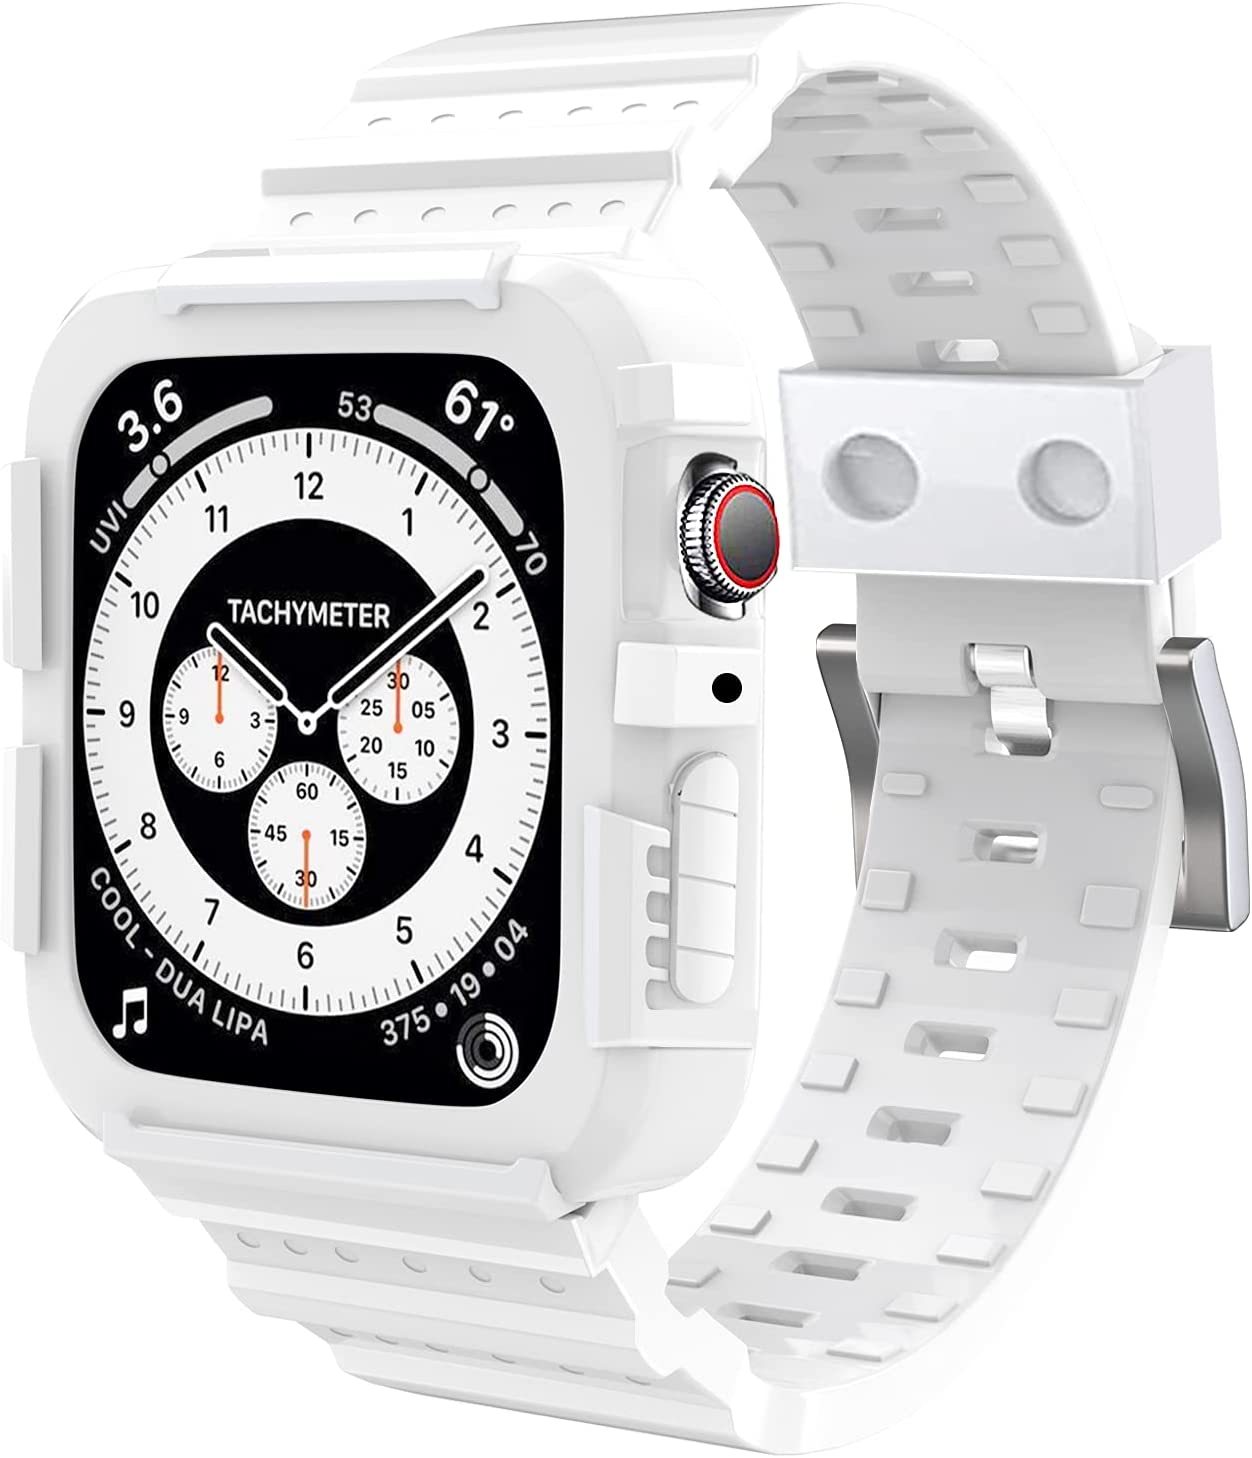 SLYEN Compatible for Apple Watch Band with Case Accessories 38mm 40mm Men Women,Bright White Rugged Strap with Shock-Proof Bumper for iWatch Series SE/6/5/4/3/2